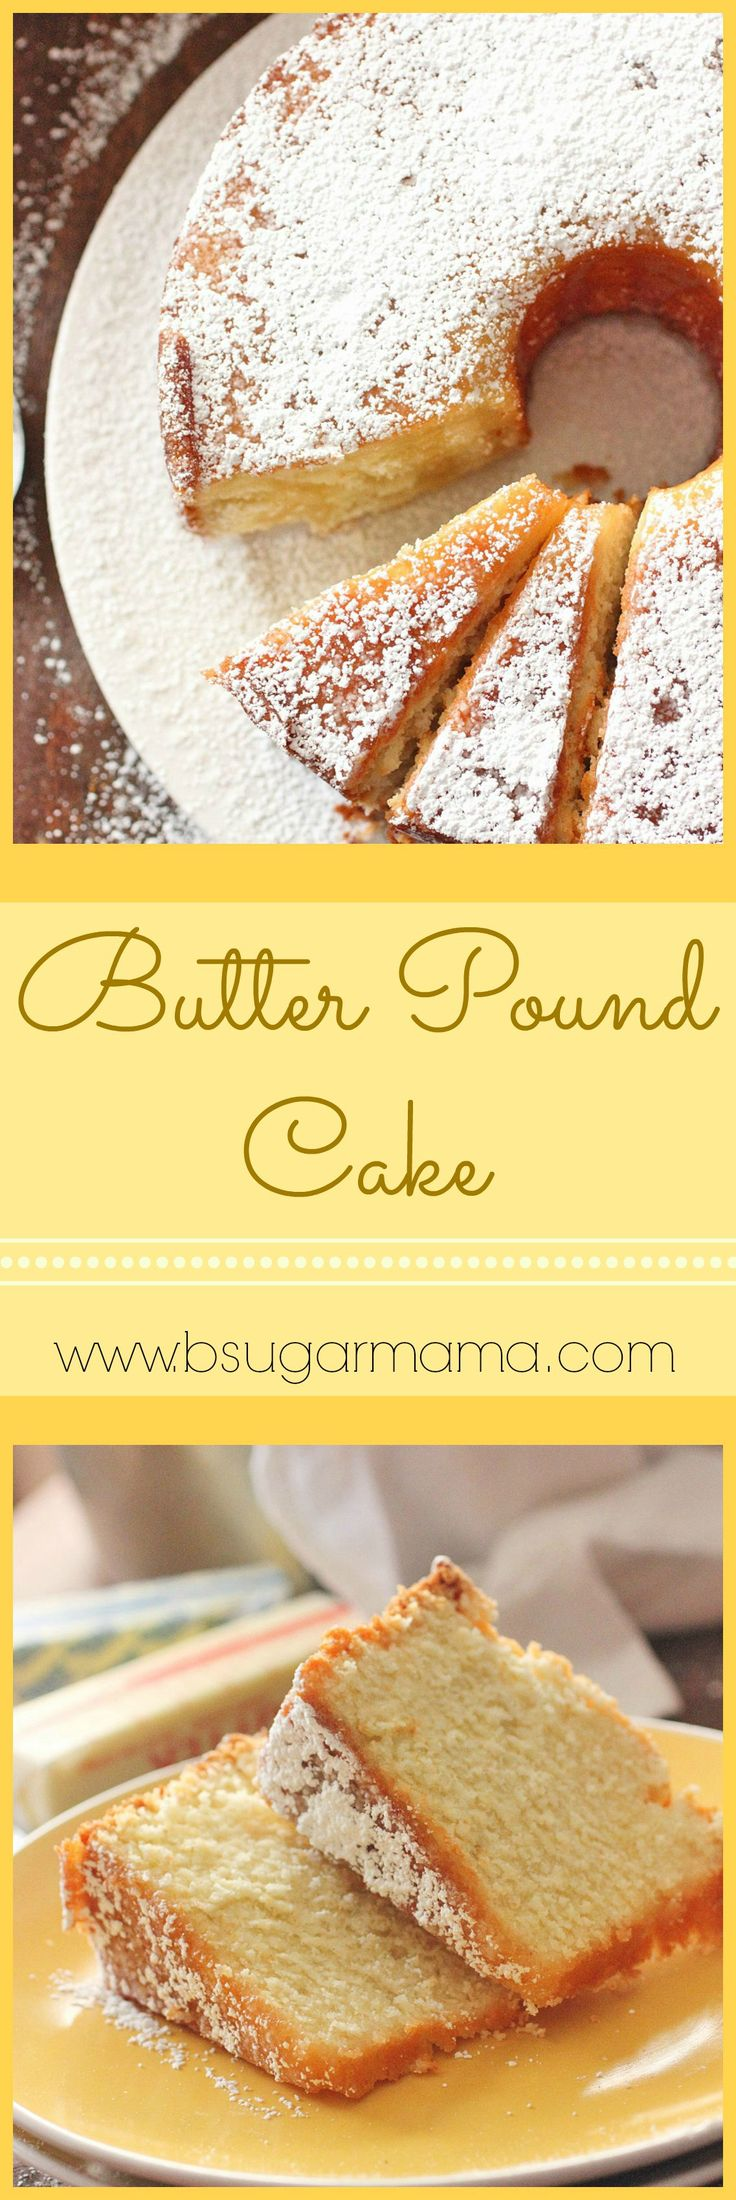 Butter Pound Cake: Amazing and delicious!